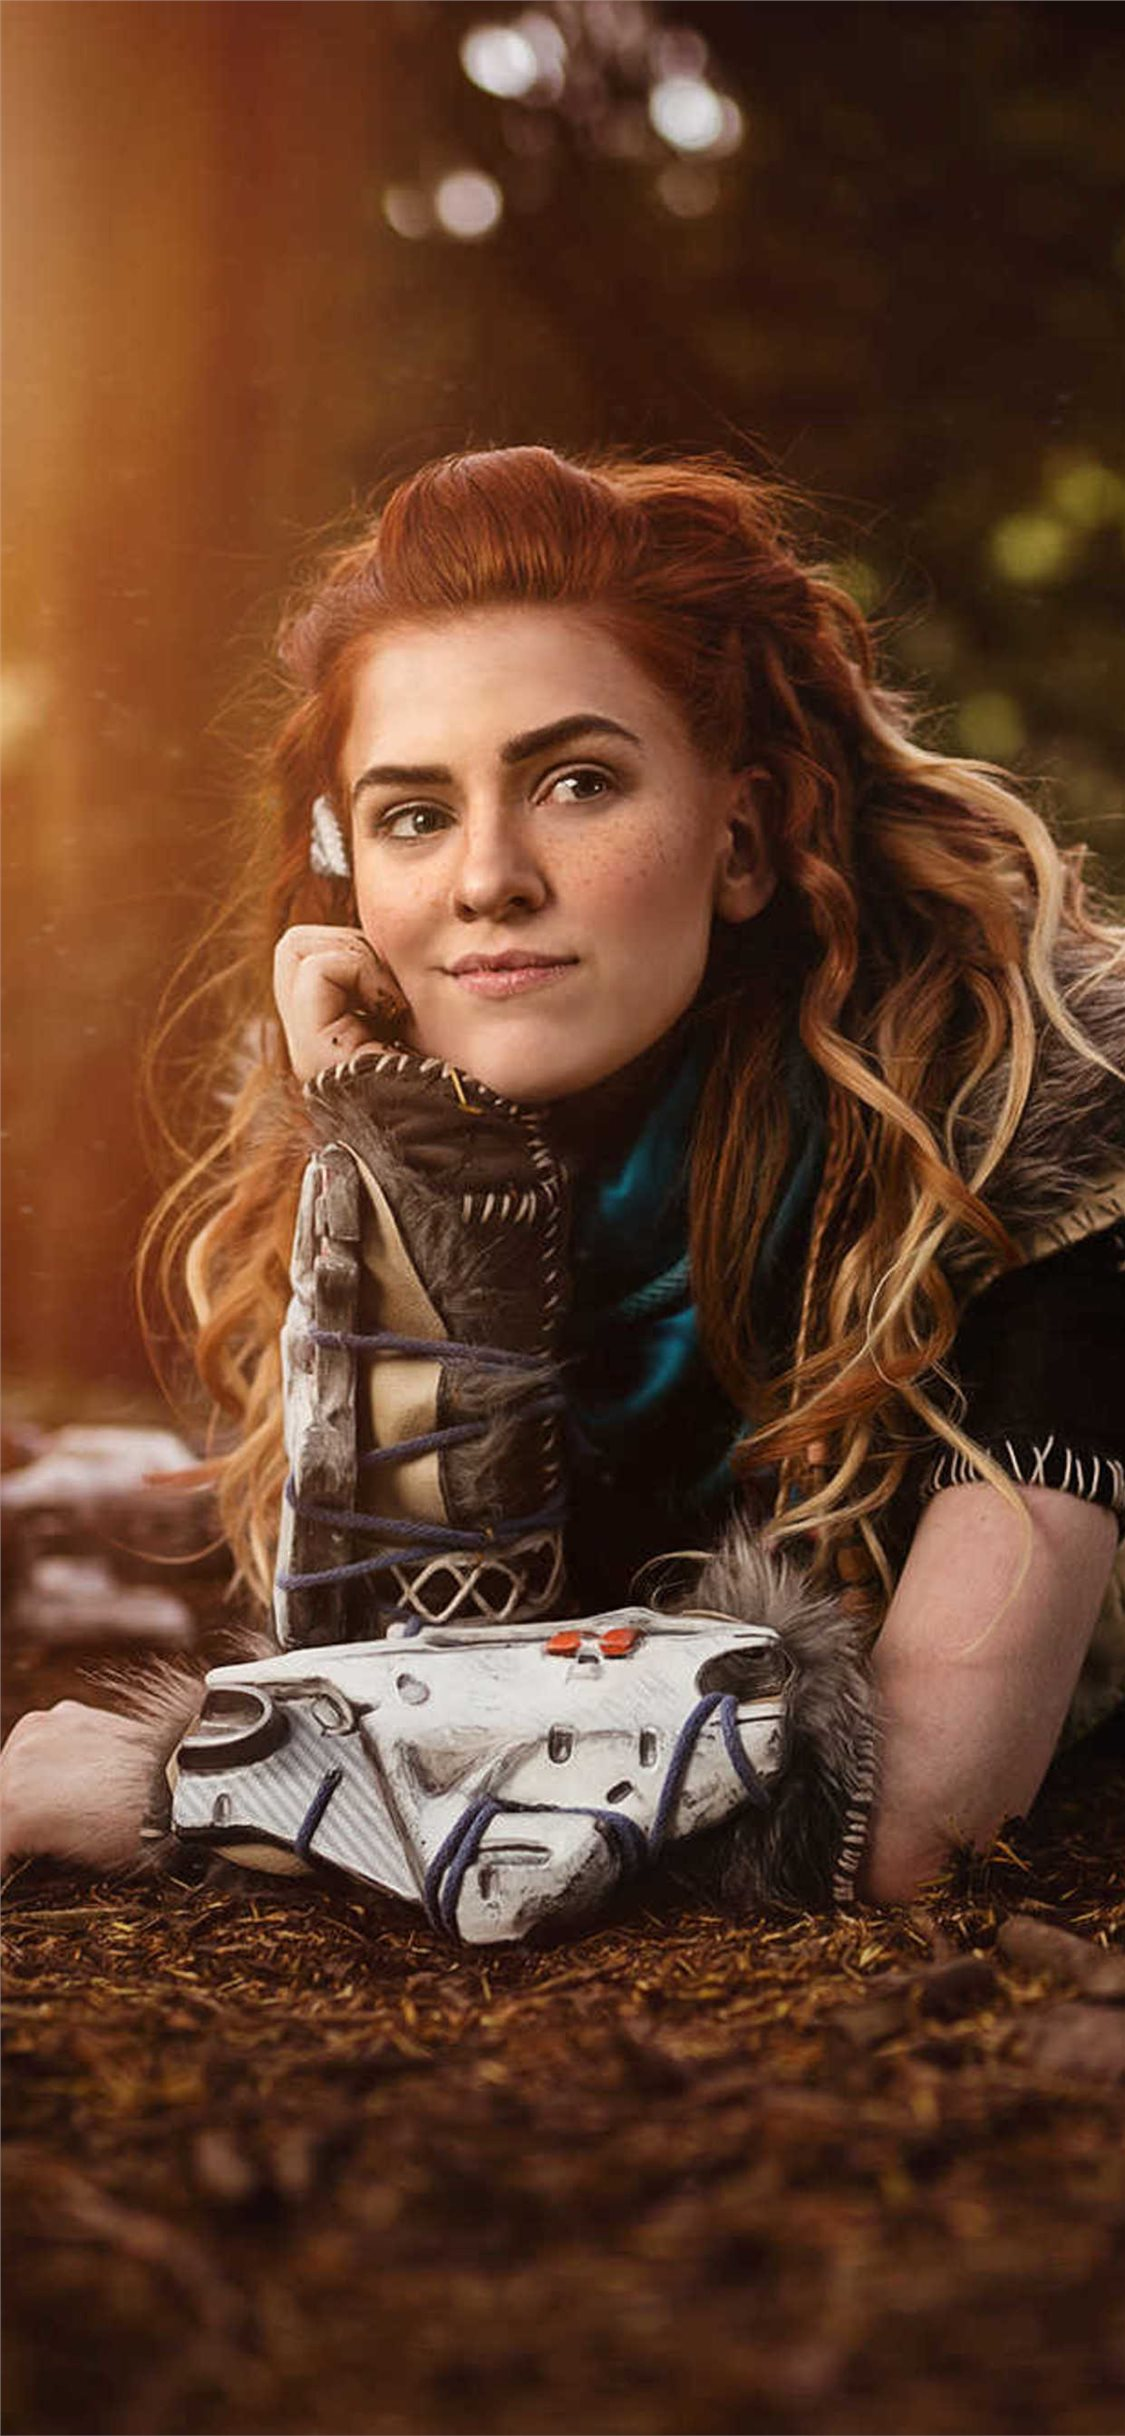 Aloy From Horizon Zero Dawn Cosplay Iphone X Wallpapers Free Download